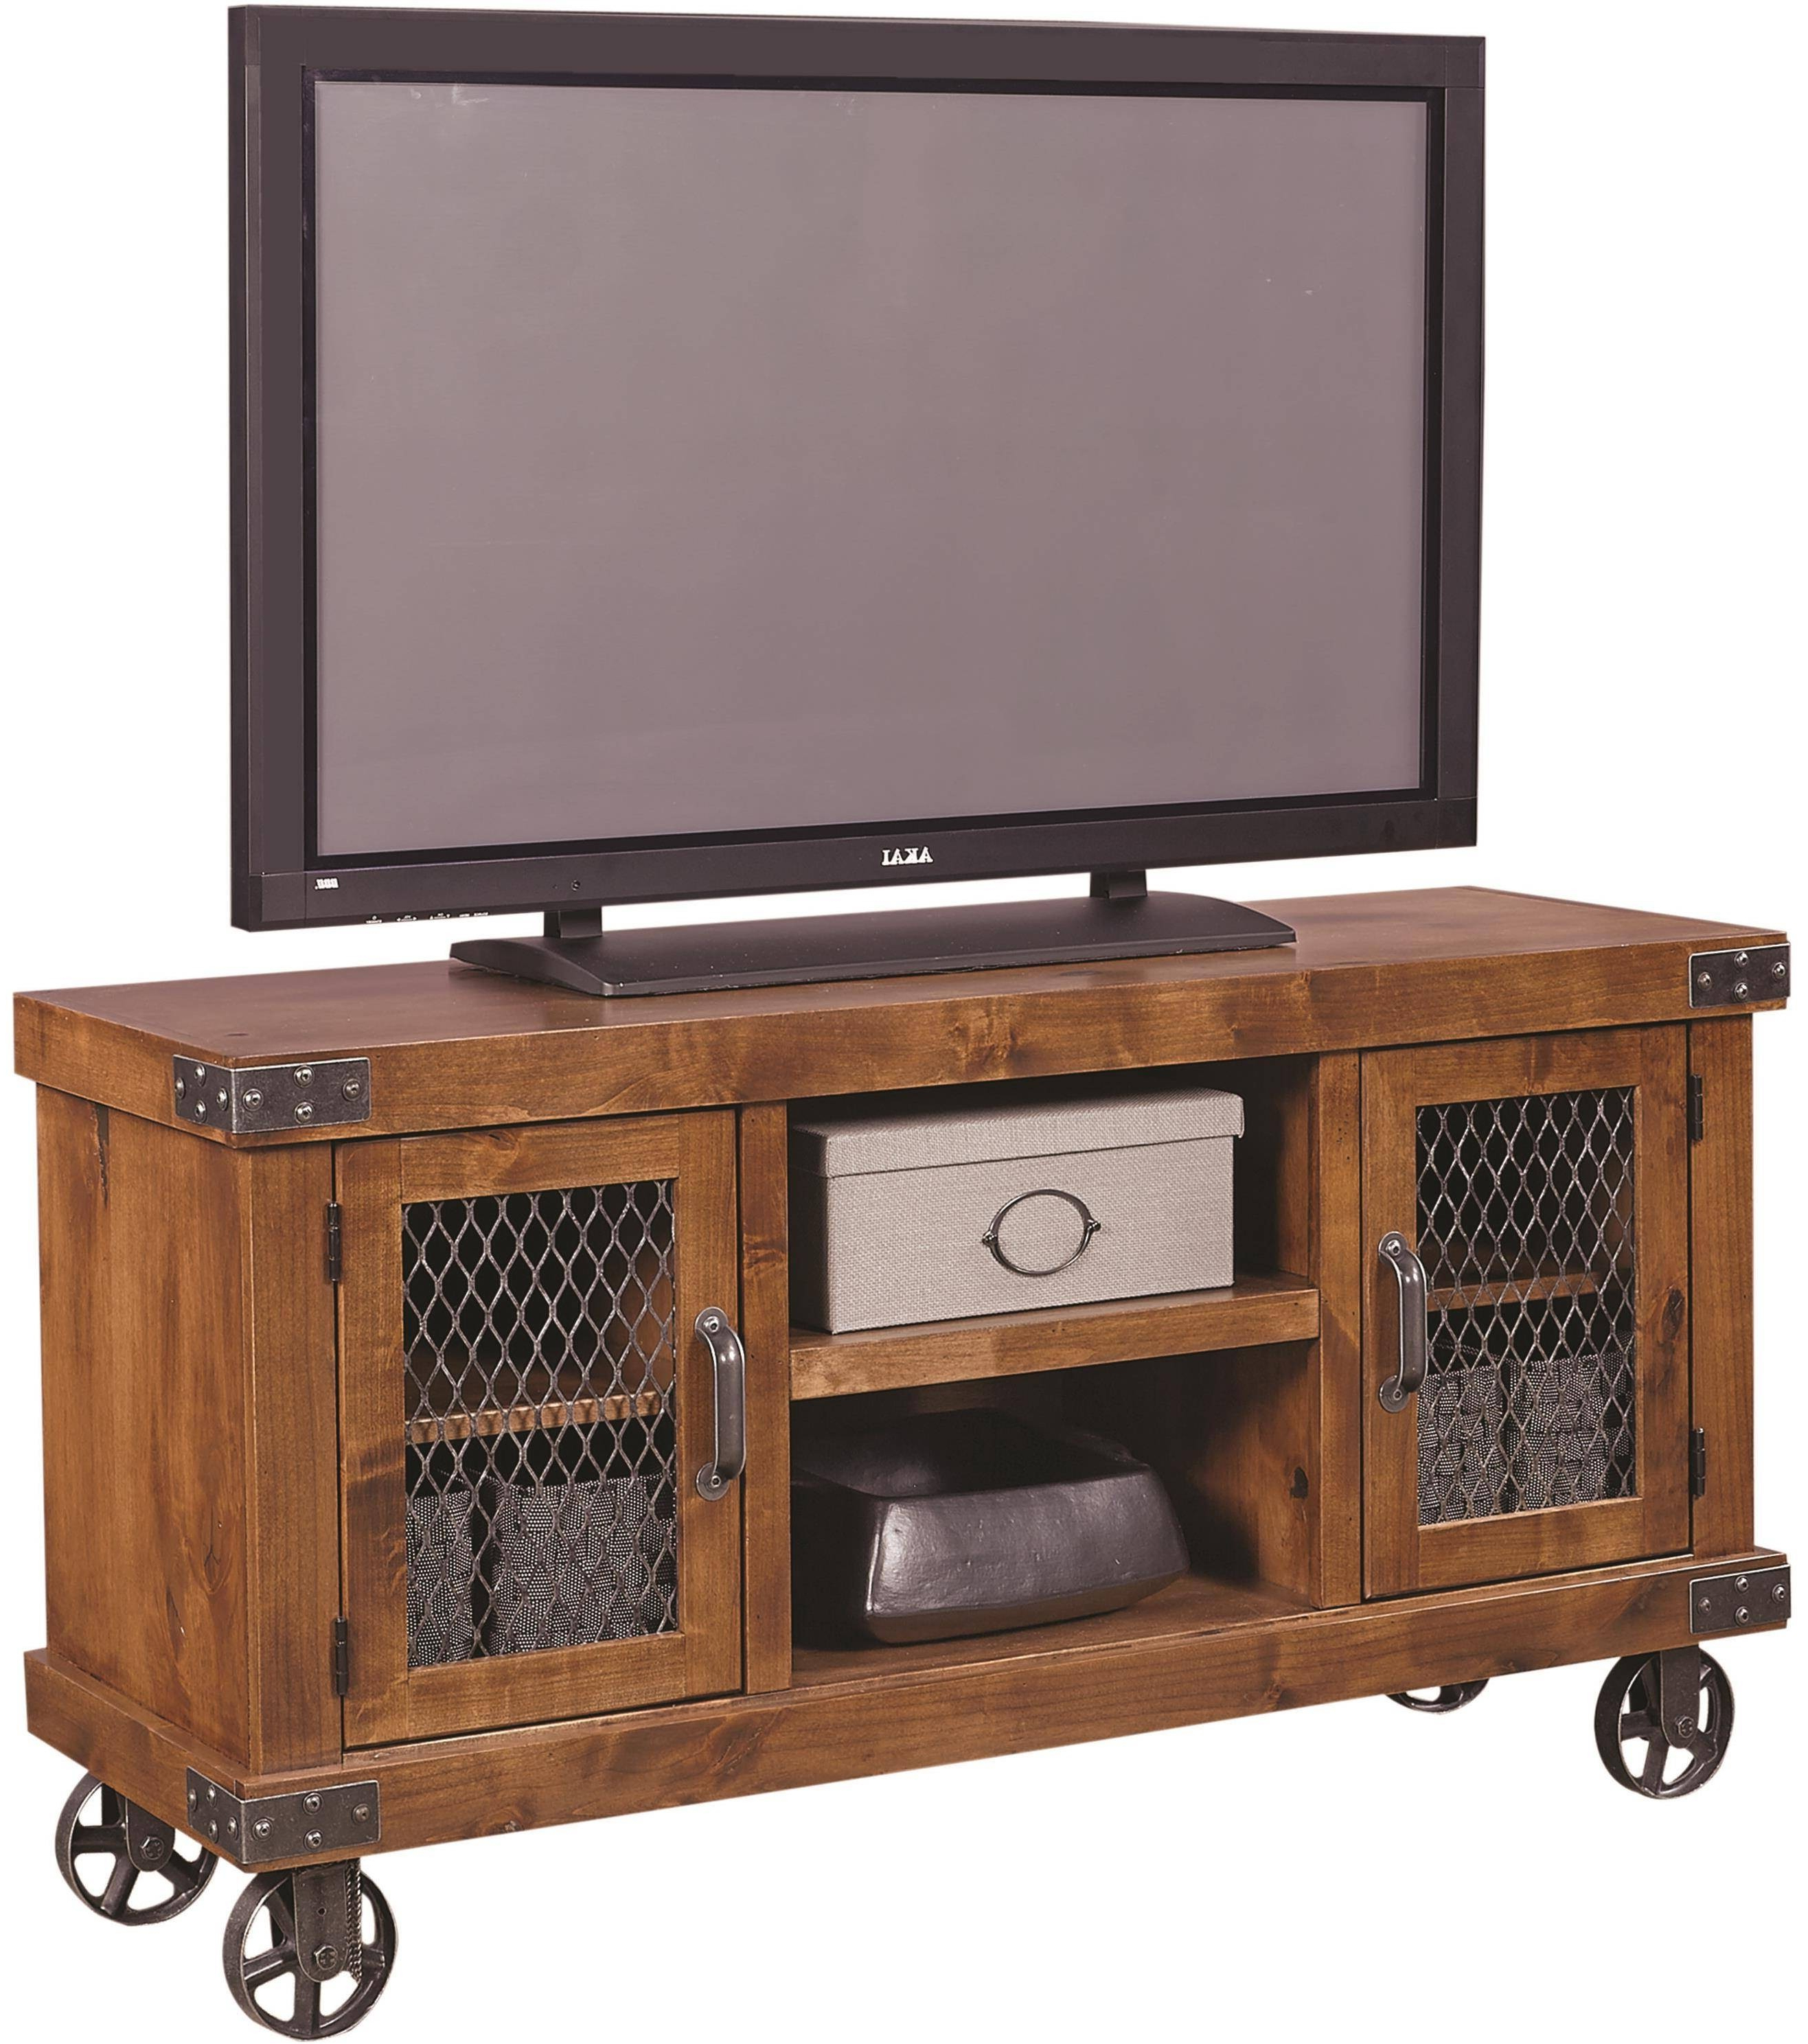 2018 Best Of Industrial Corner Tv Stands Buy Canada Stand Dollar Intended For Recent Industrial Corner Tv Stands (Gallery 9 of 20)